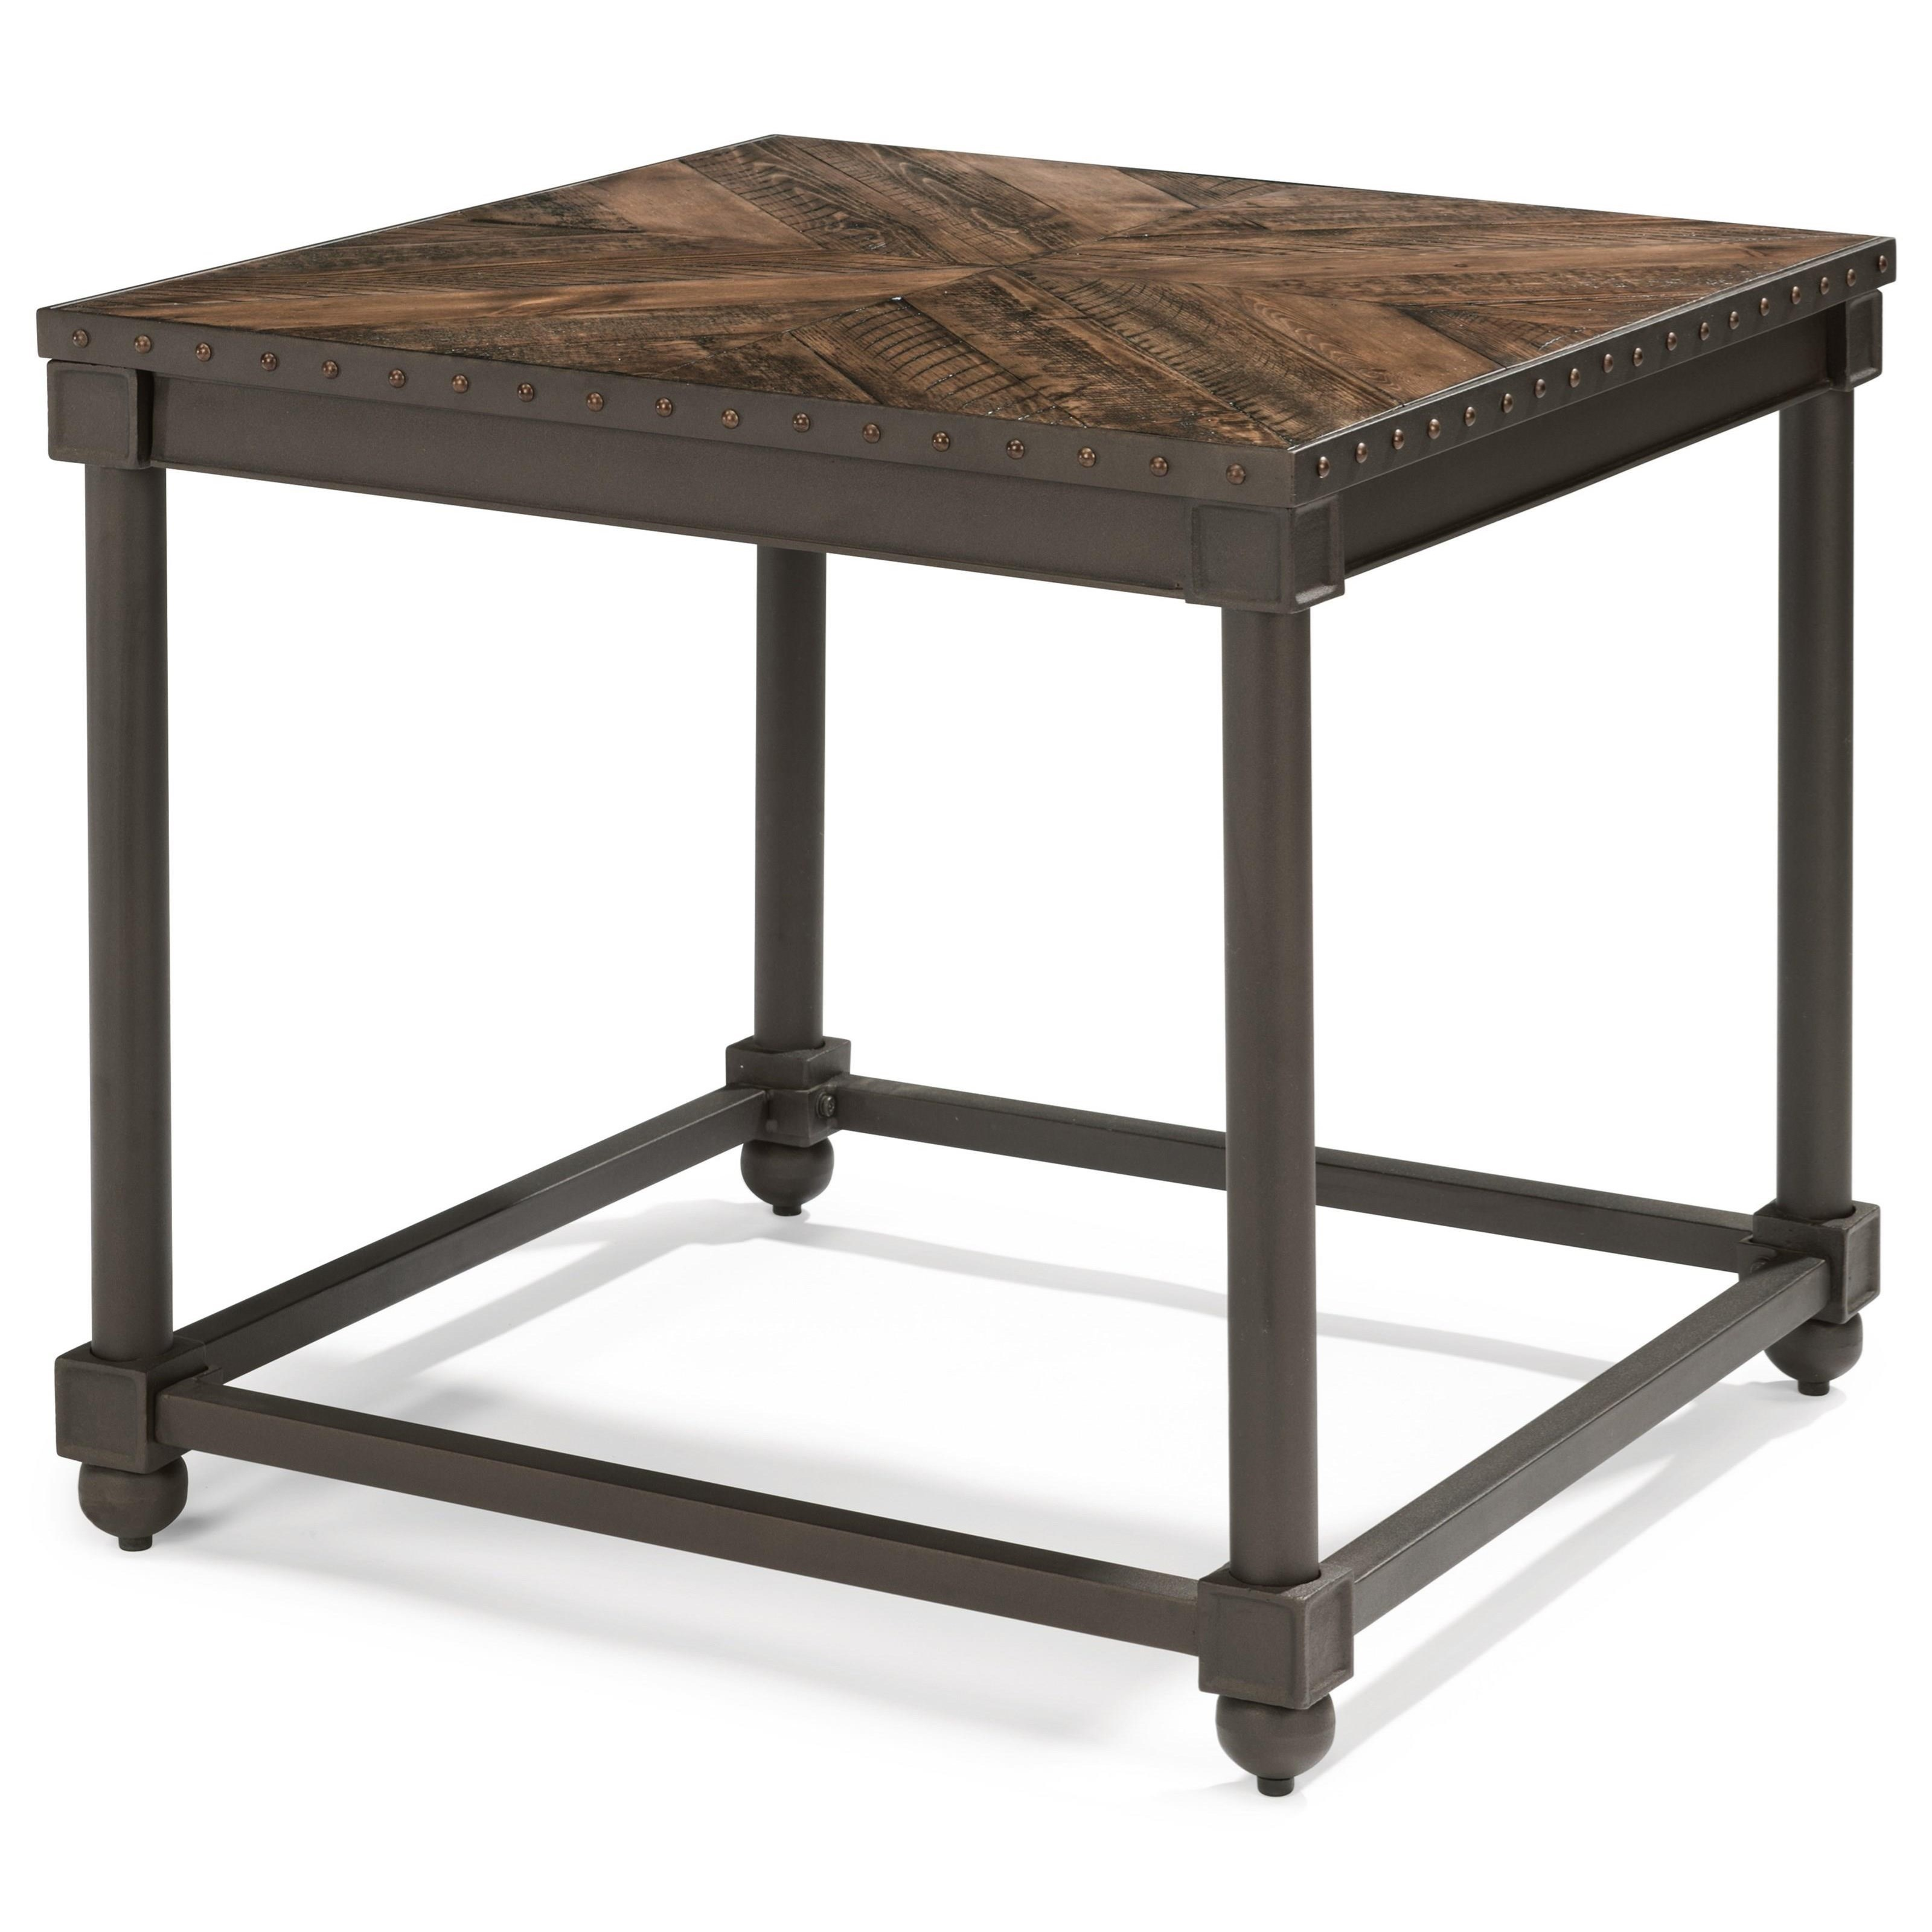 Flexsteel Wynwood Collection Sequence Industrial Lamp Table  - Item Number: W1439-02